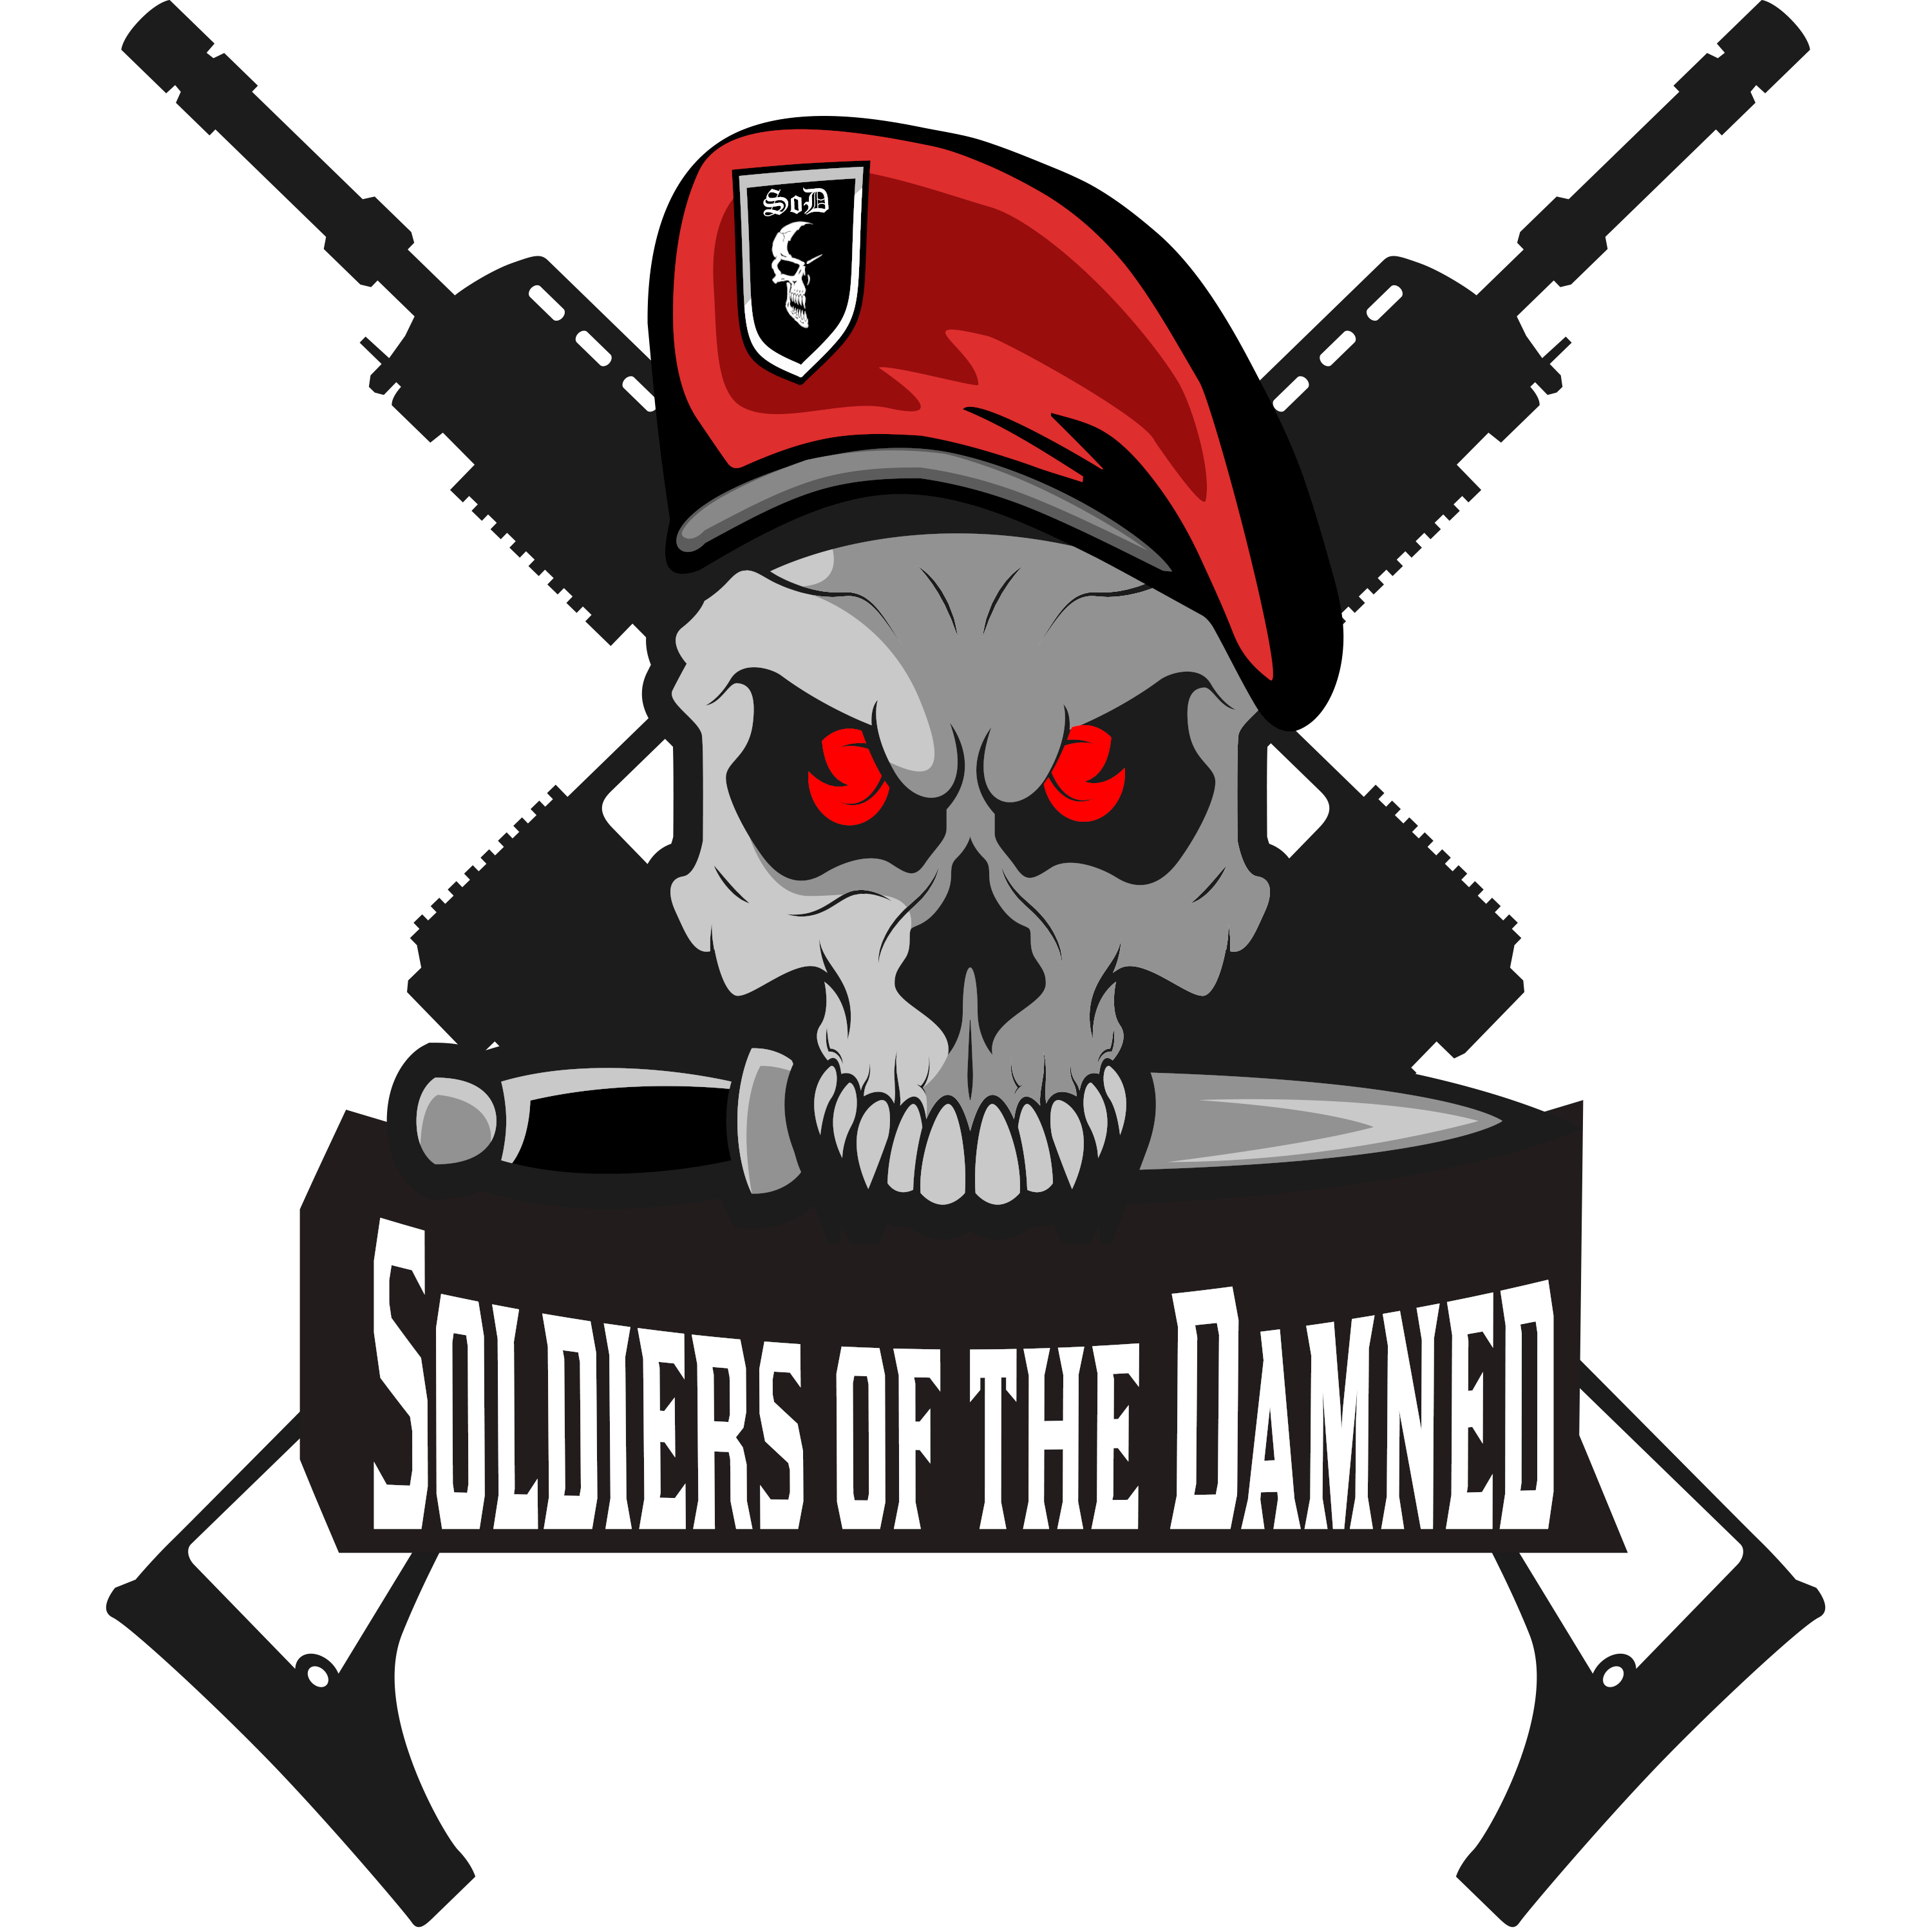 Der-Soldiers Of The Damned-Clan sucht noch Member 202